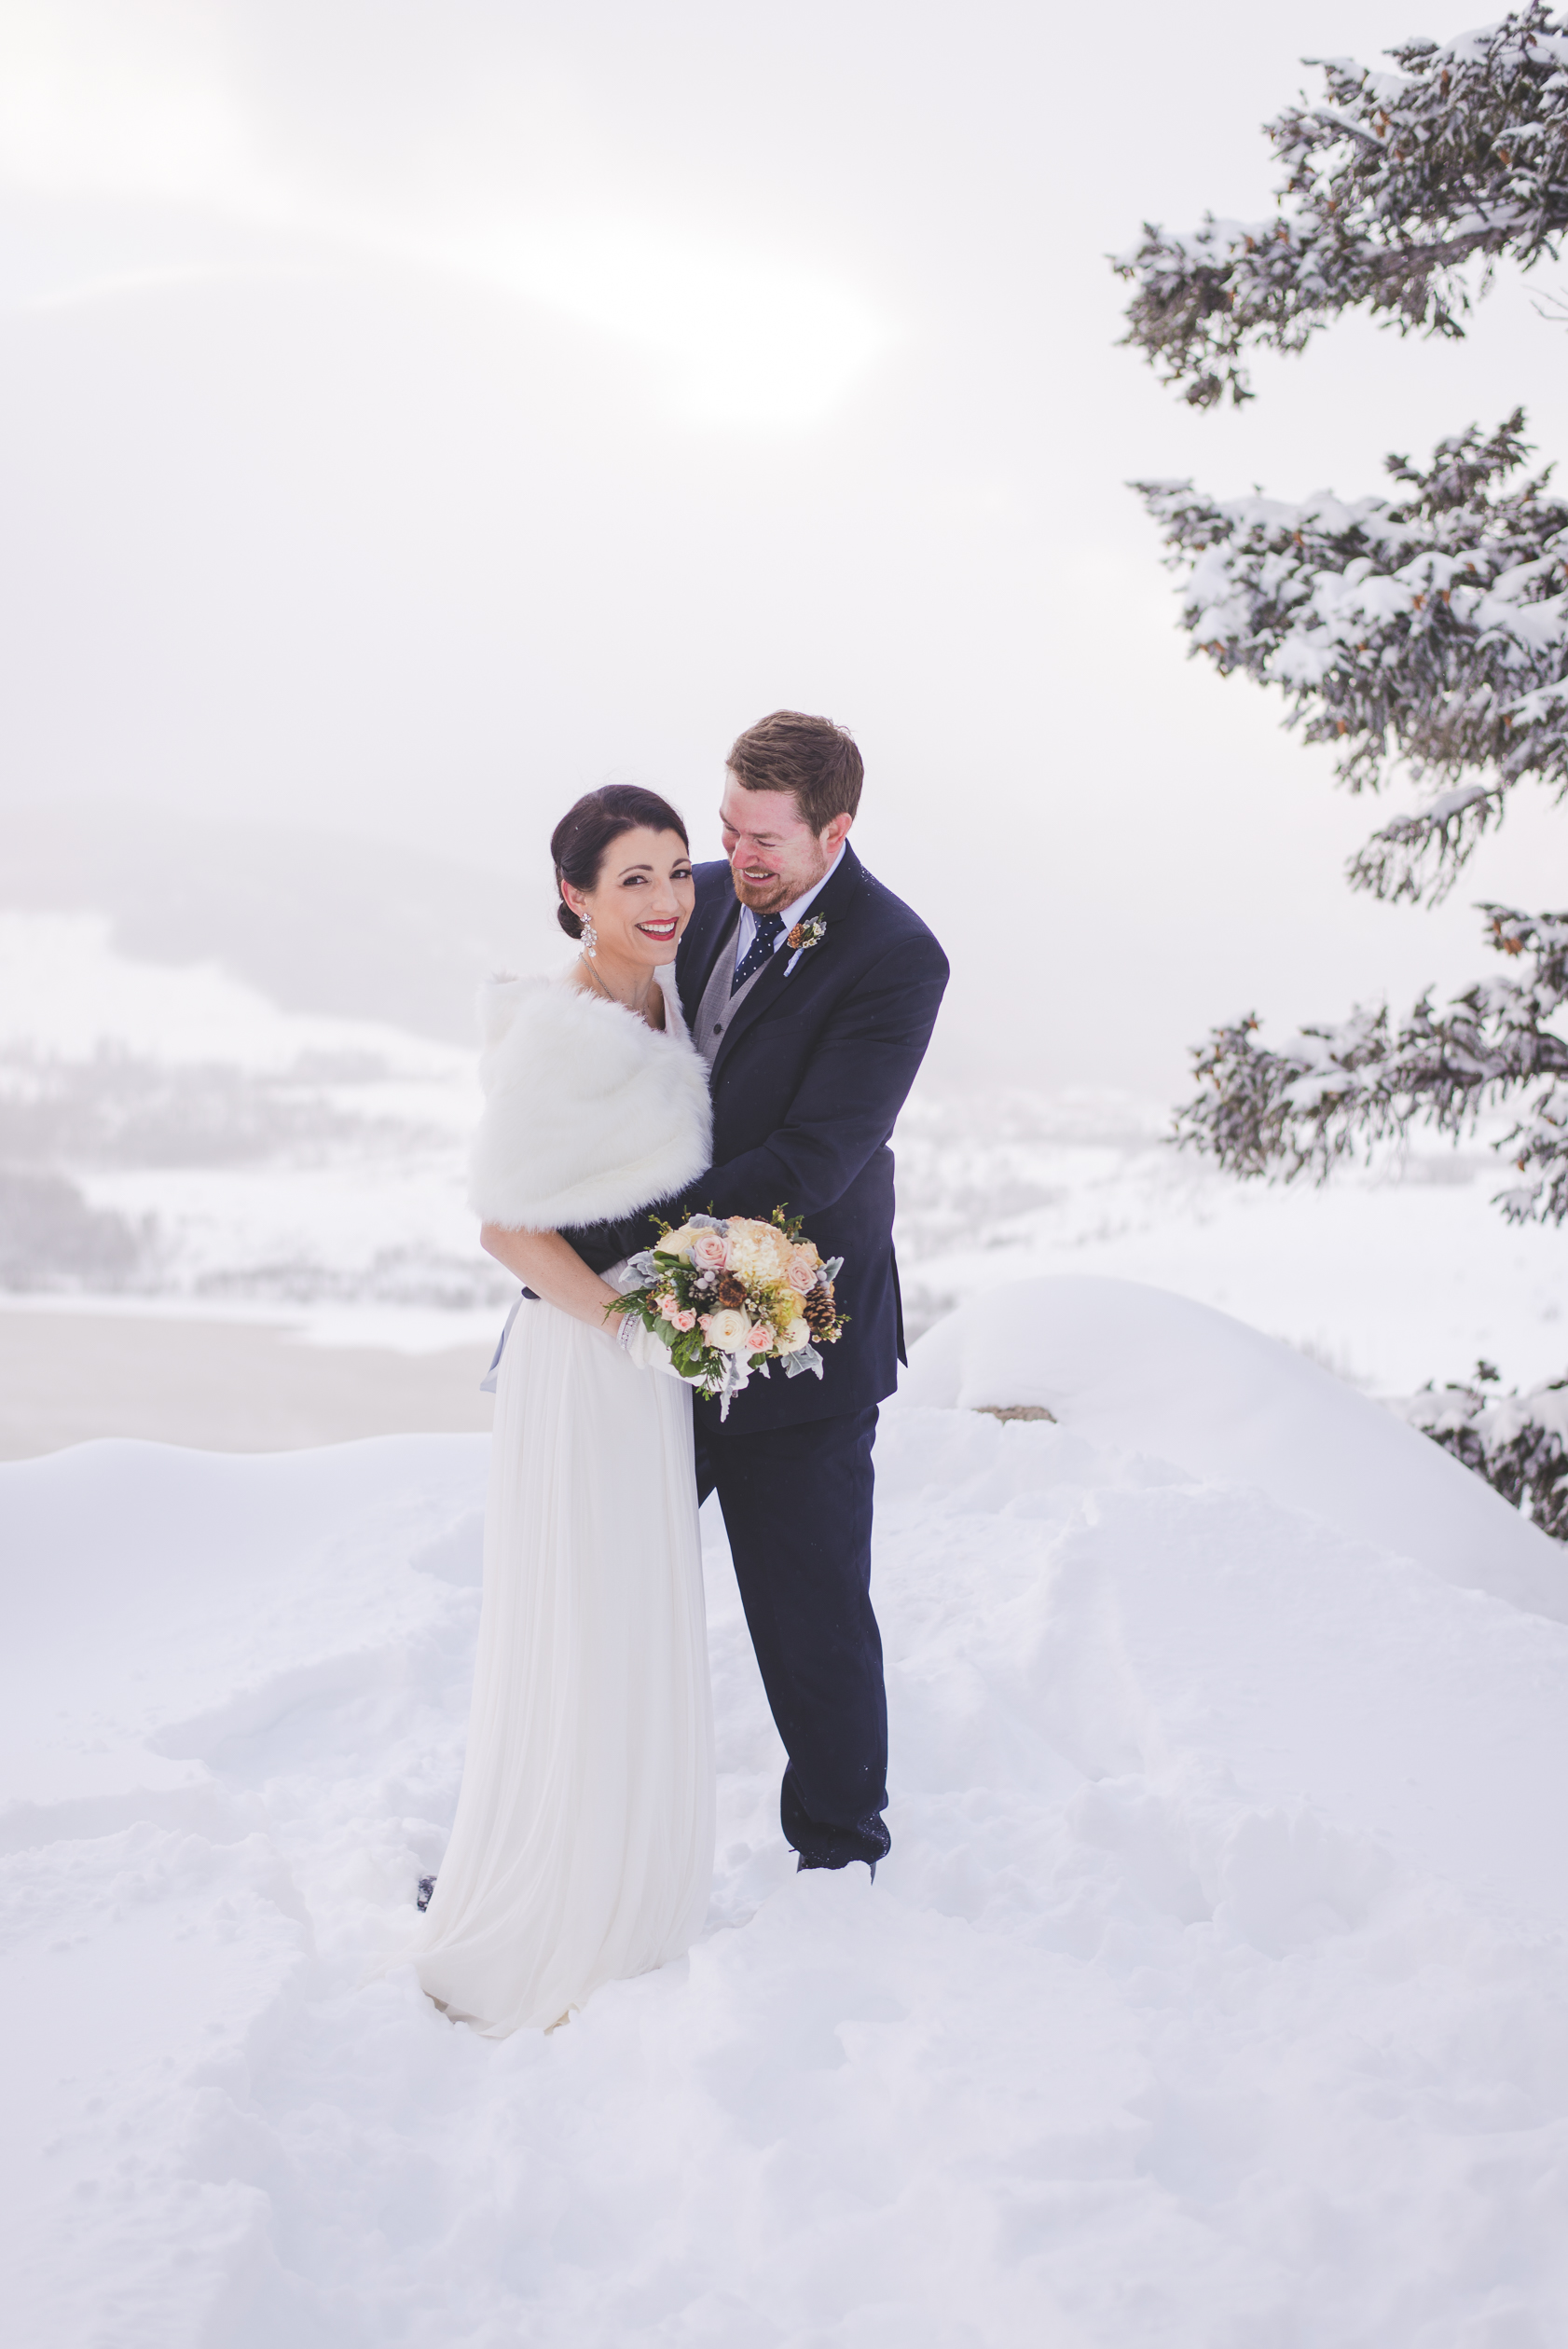 they finally made it to the overlook, where lake dillon barely peeked through the low clouds. this destination elopement was full of snow and laughter! | photo by keeping composure photography